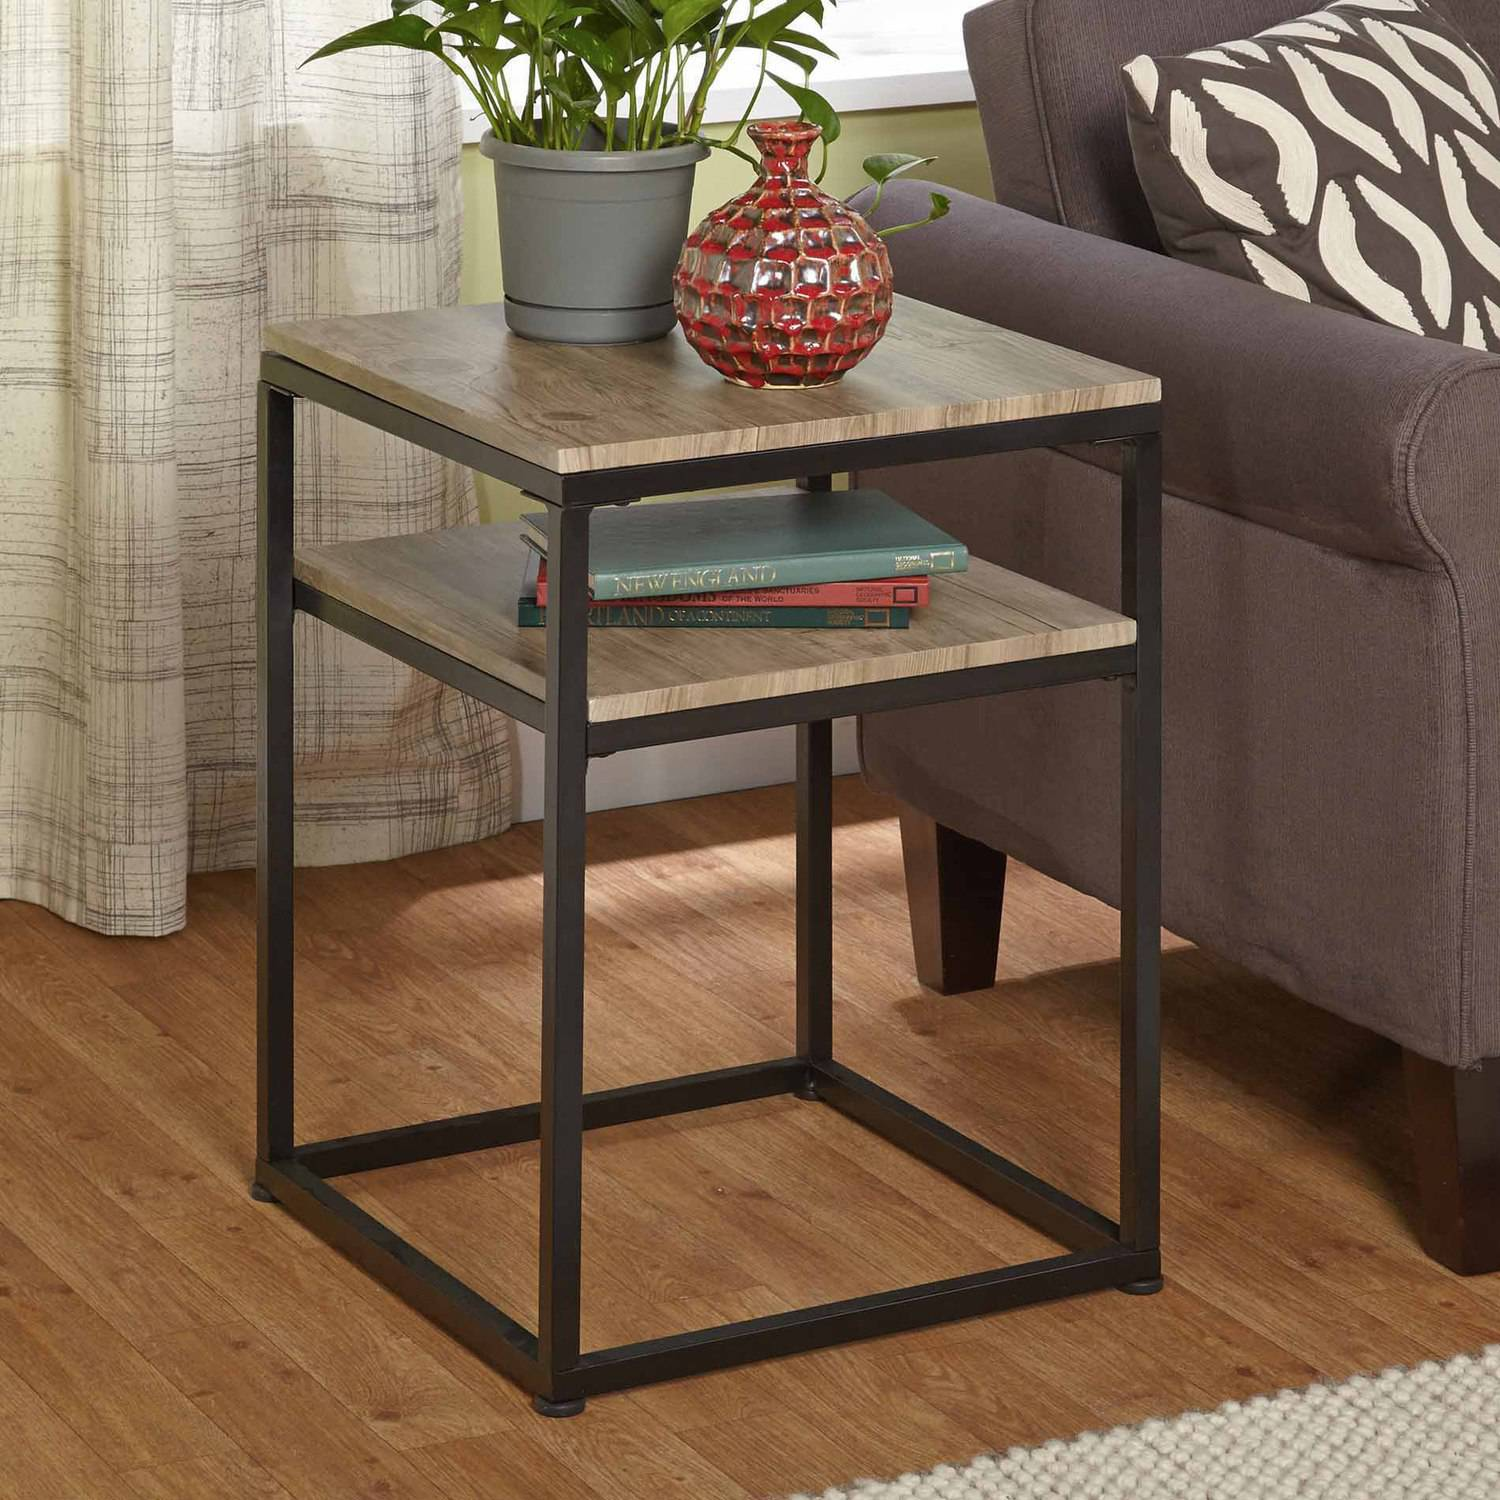 end table tables for your lovely home ikea square gunmetal rustic metal world market side accent wood furniture grey wingback chair country decorating ideas pool bunnings kmart